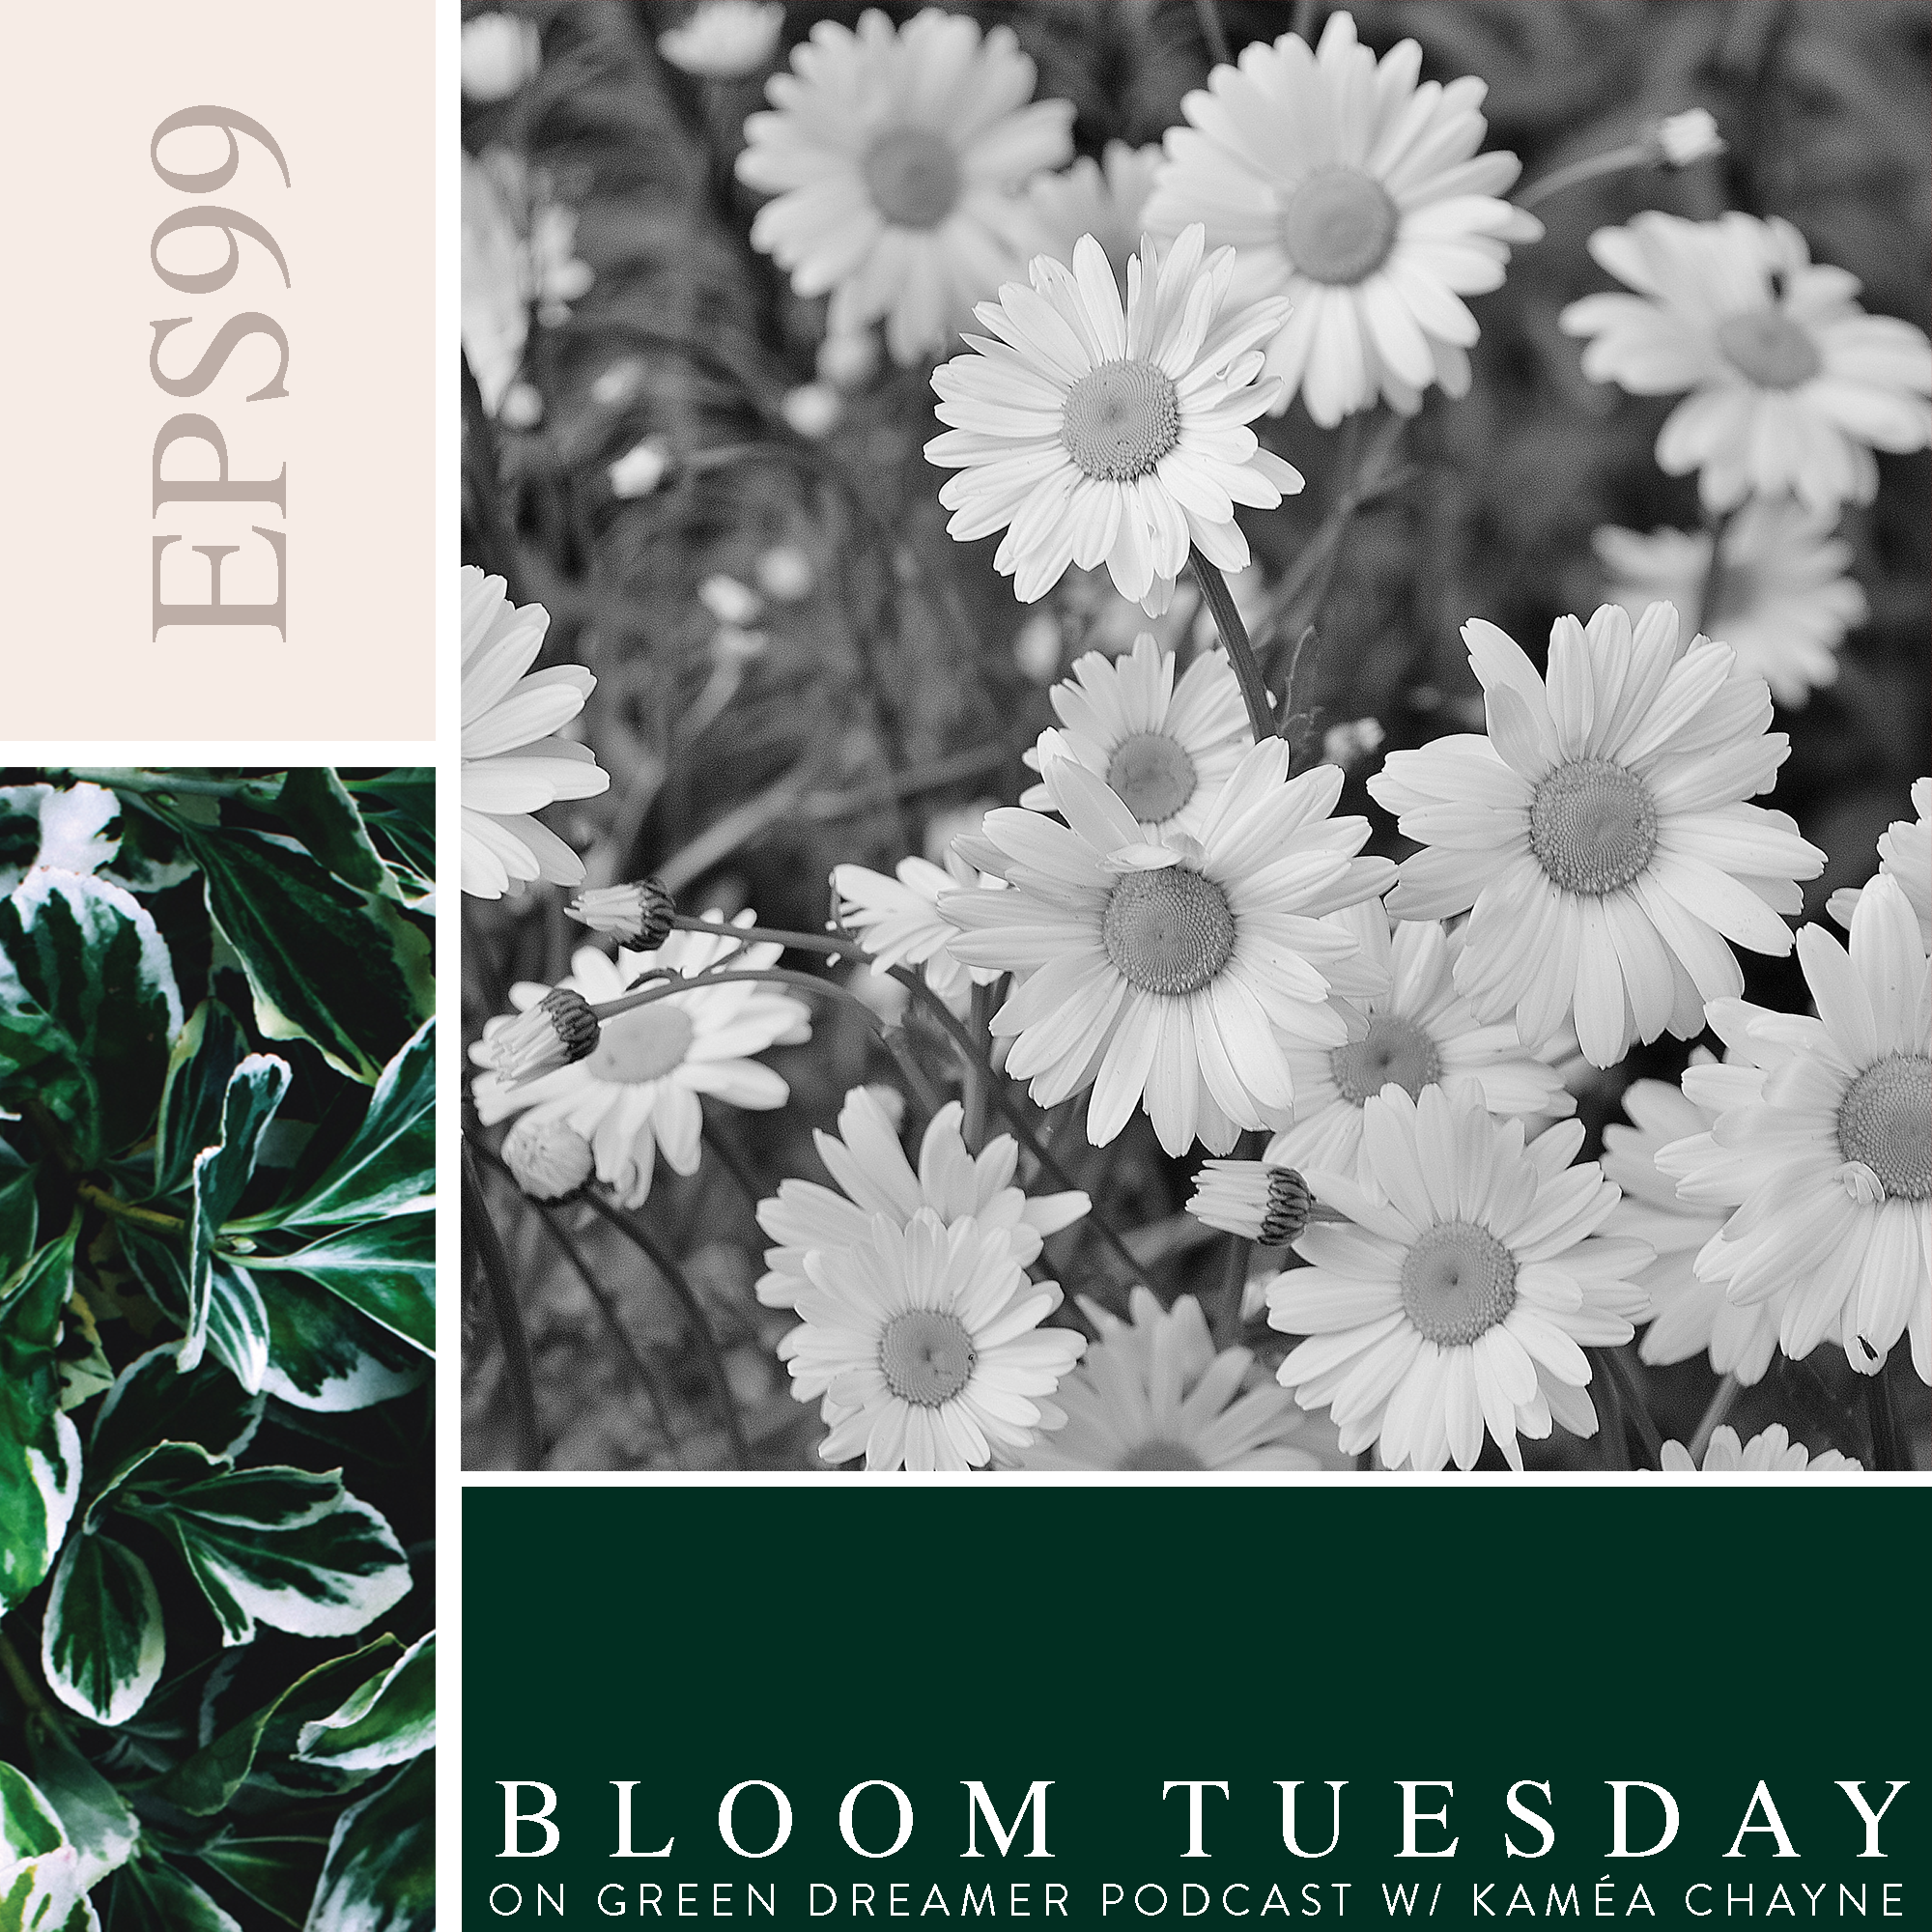 99) BLOOM TUESDAY